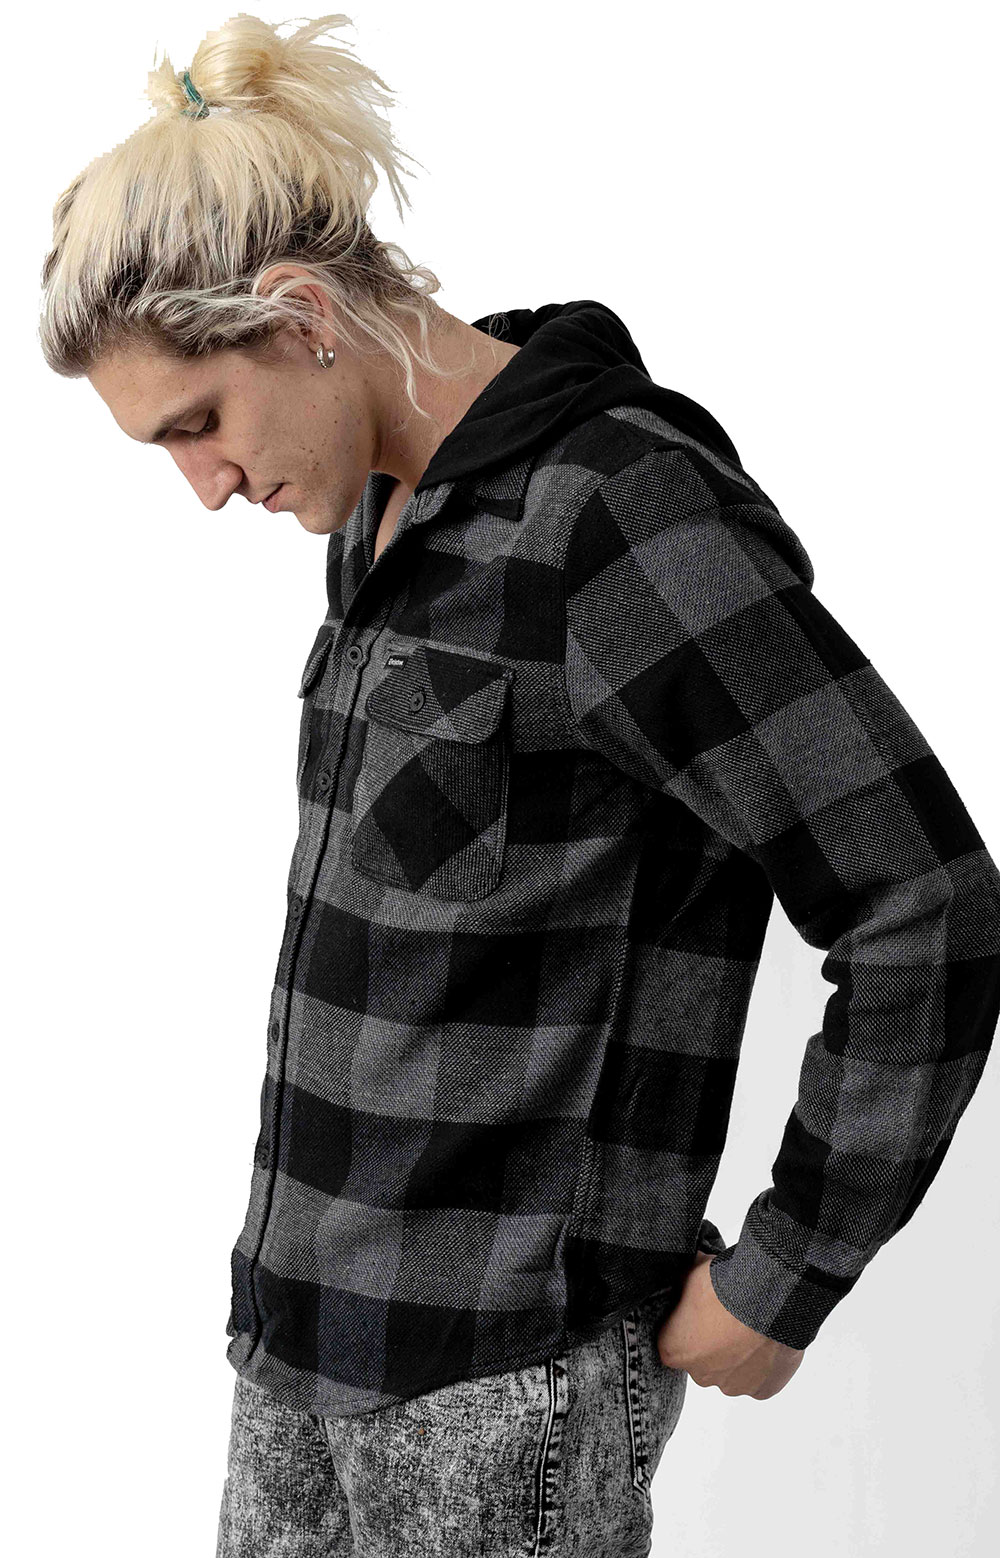 Bowery Hood L/S Flannel Button-Up Shirt - Black/Heather Grey 2